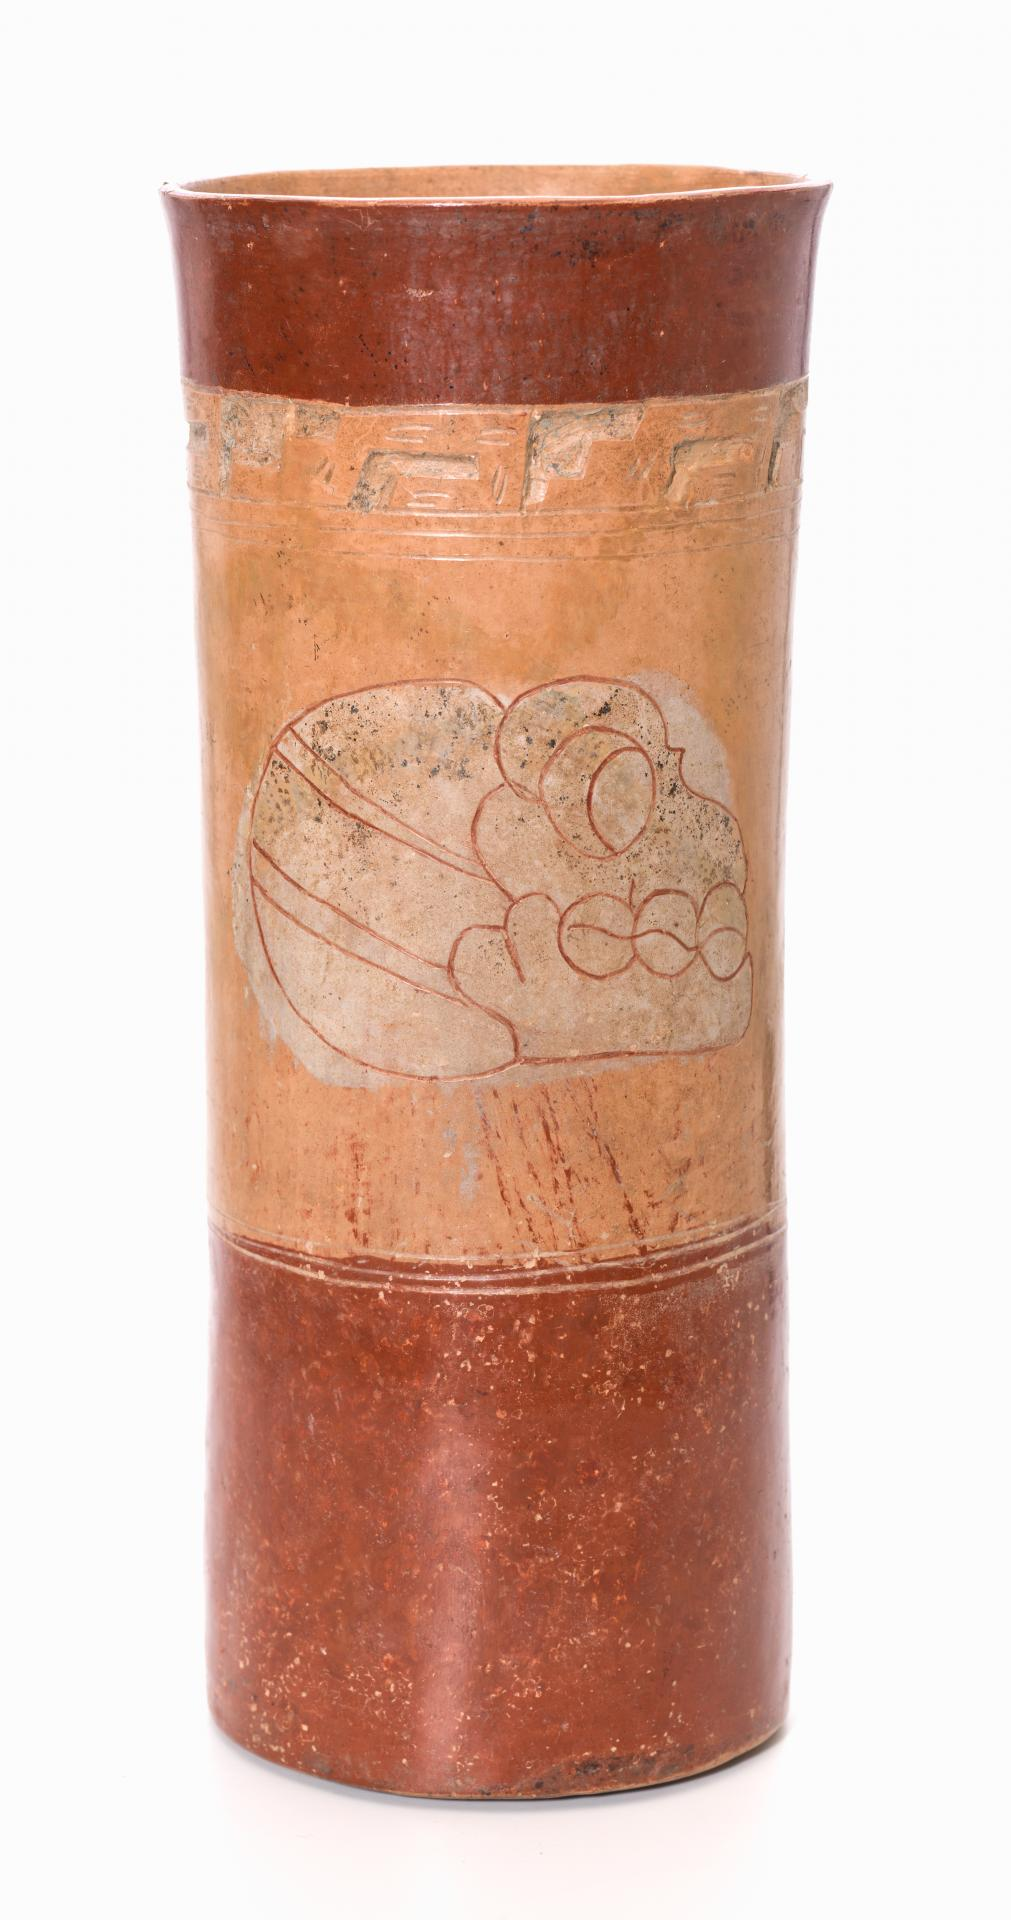 Resist-painted vase with glyphic skull design